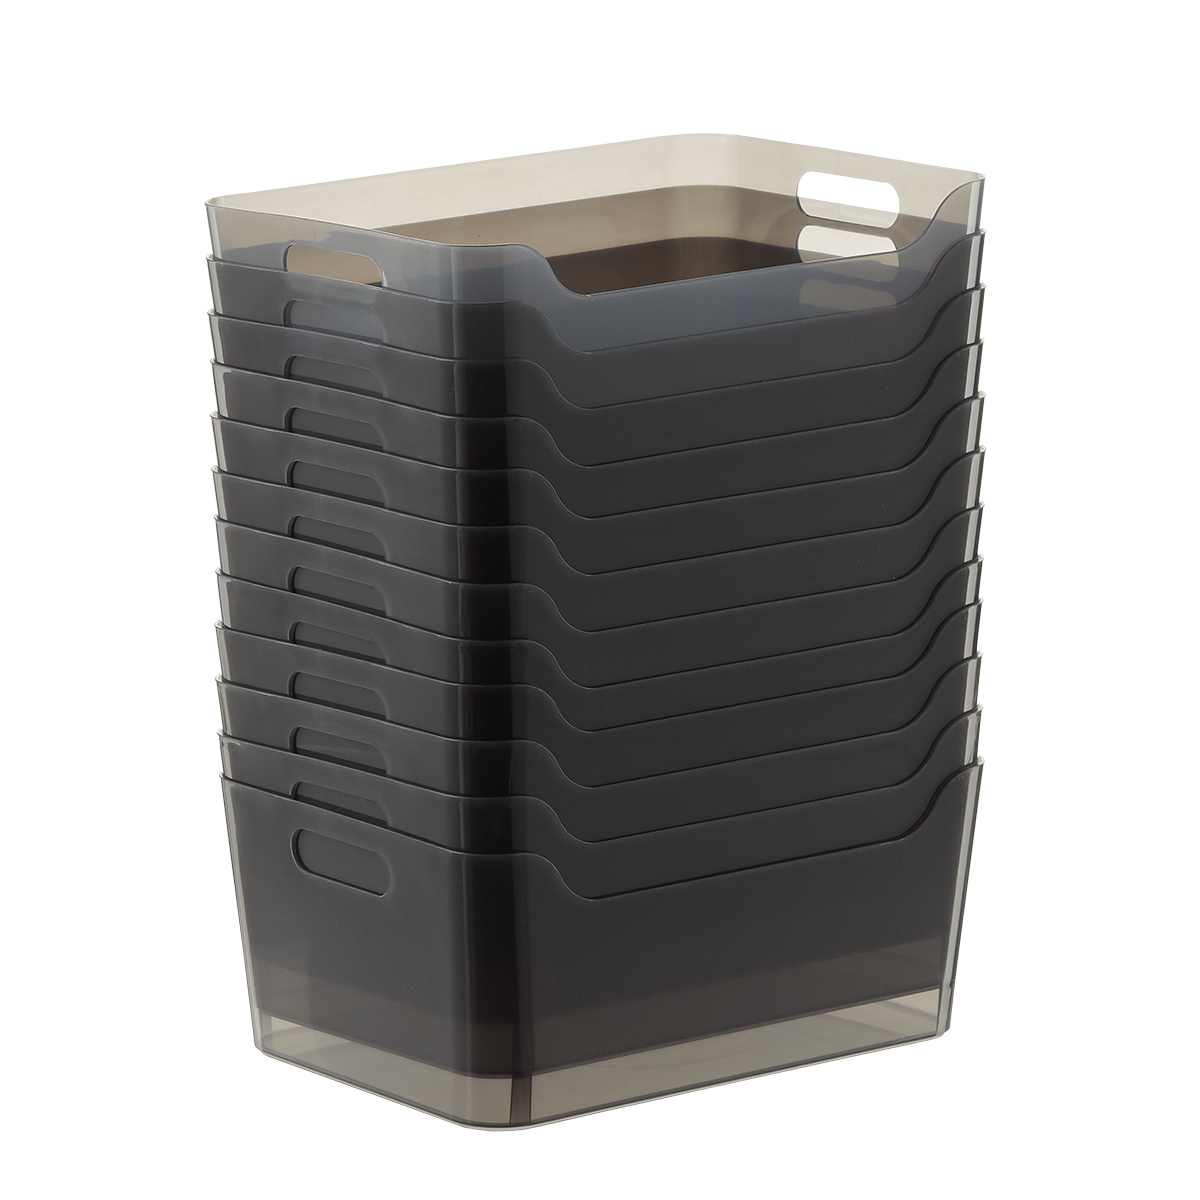 Case of 12 of Smoke Plastic Storage Bins with Handles